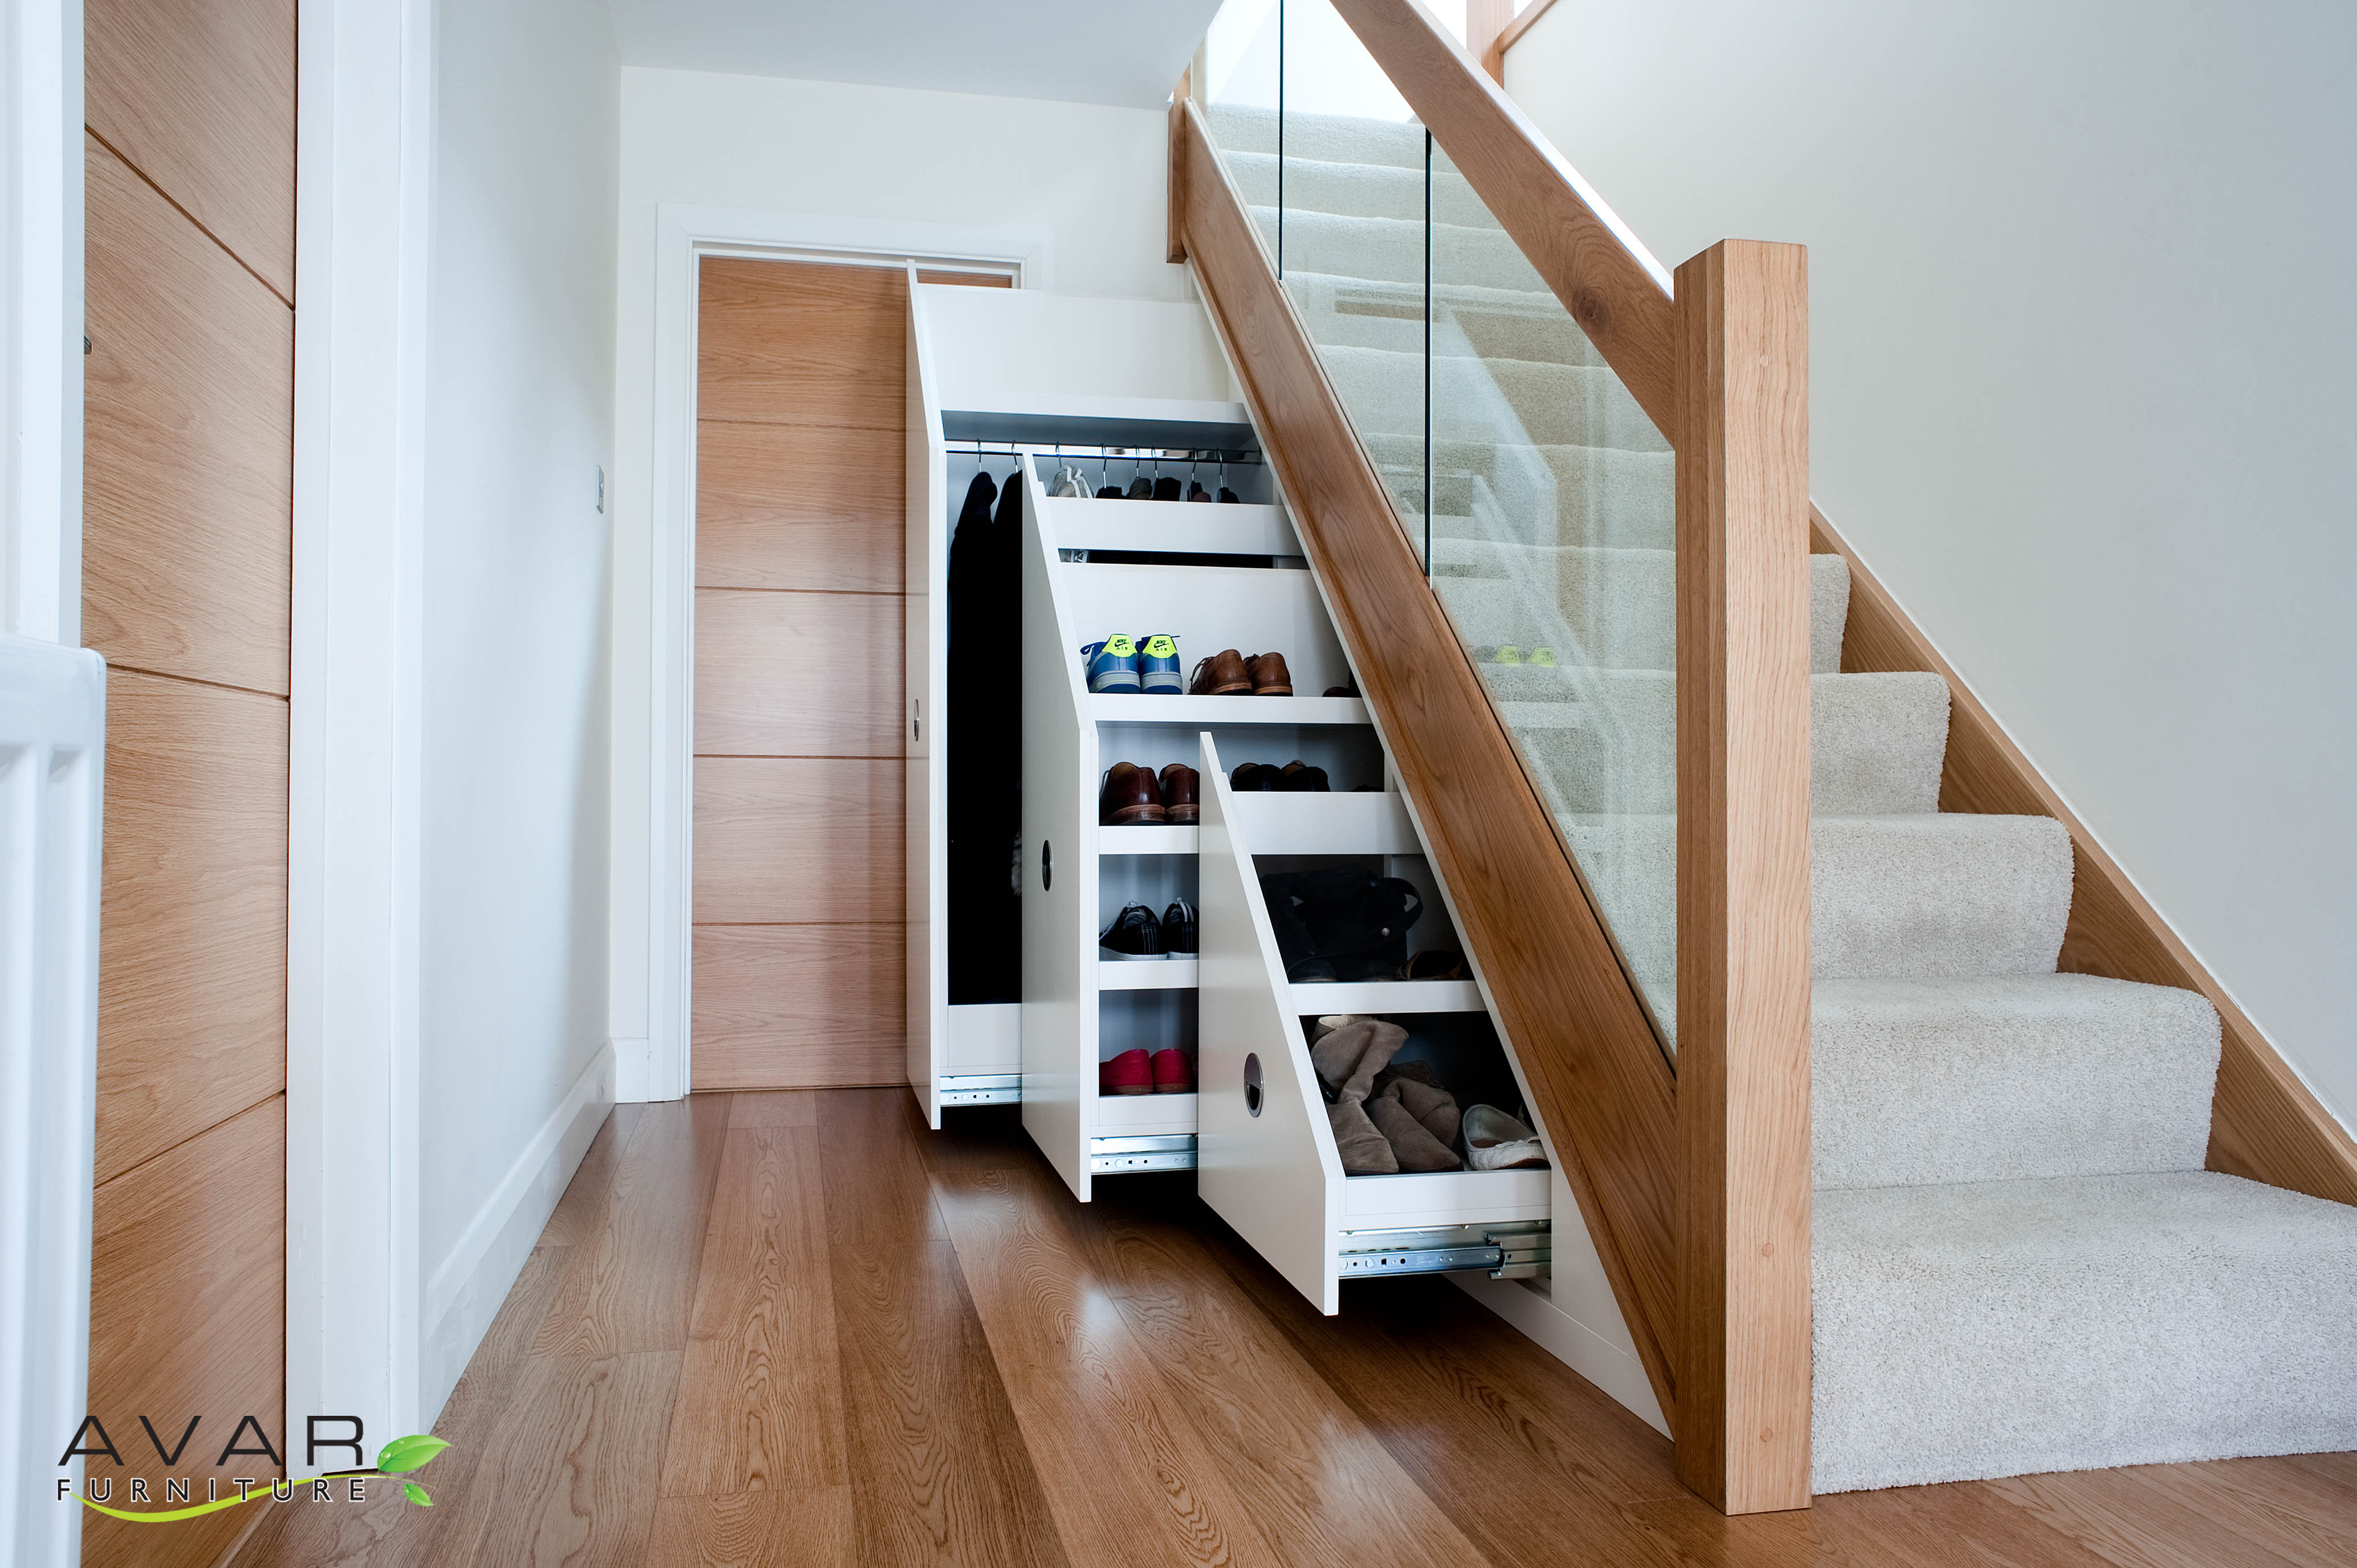 ƸӜƷ Under Stairs Storage North London Uk Avar Furniture